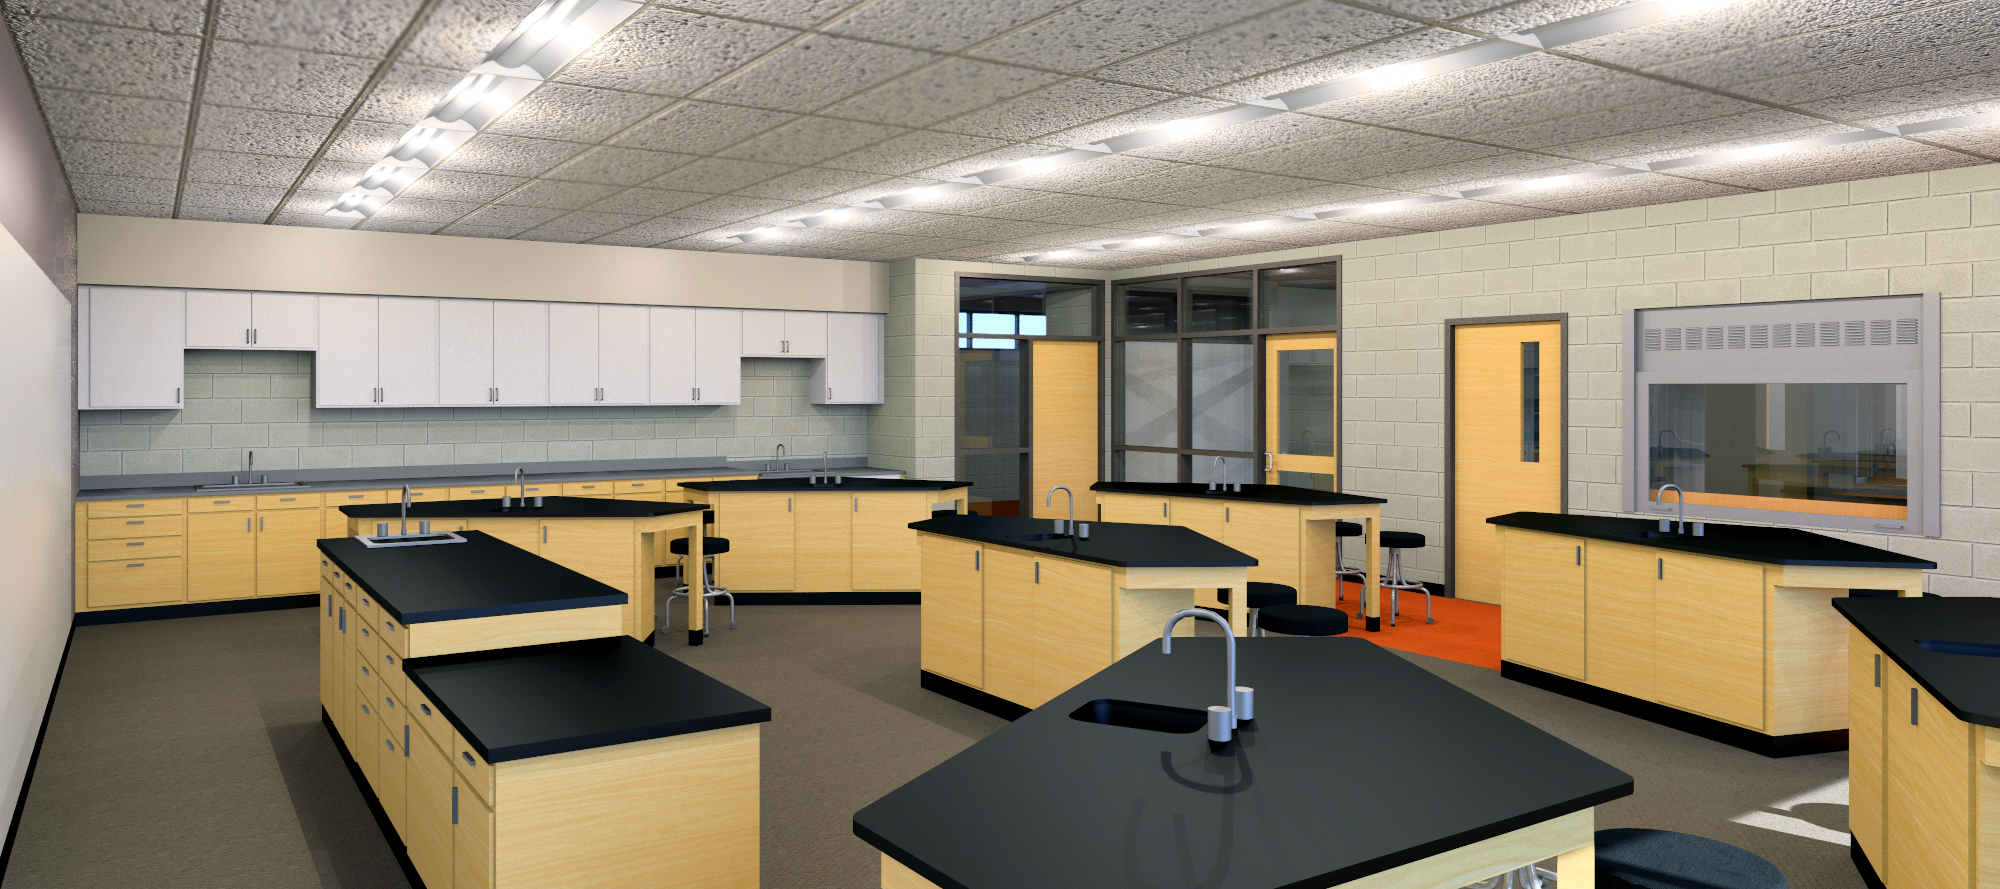 Classroom Design For High School ~ College classroom design images elementary school